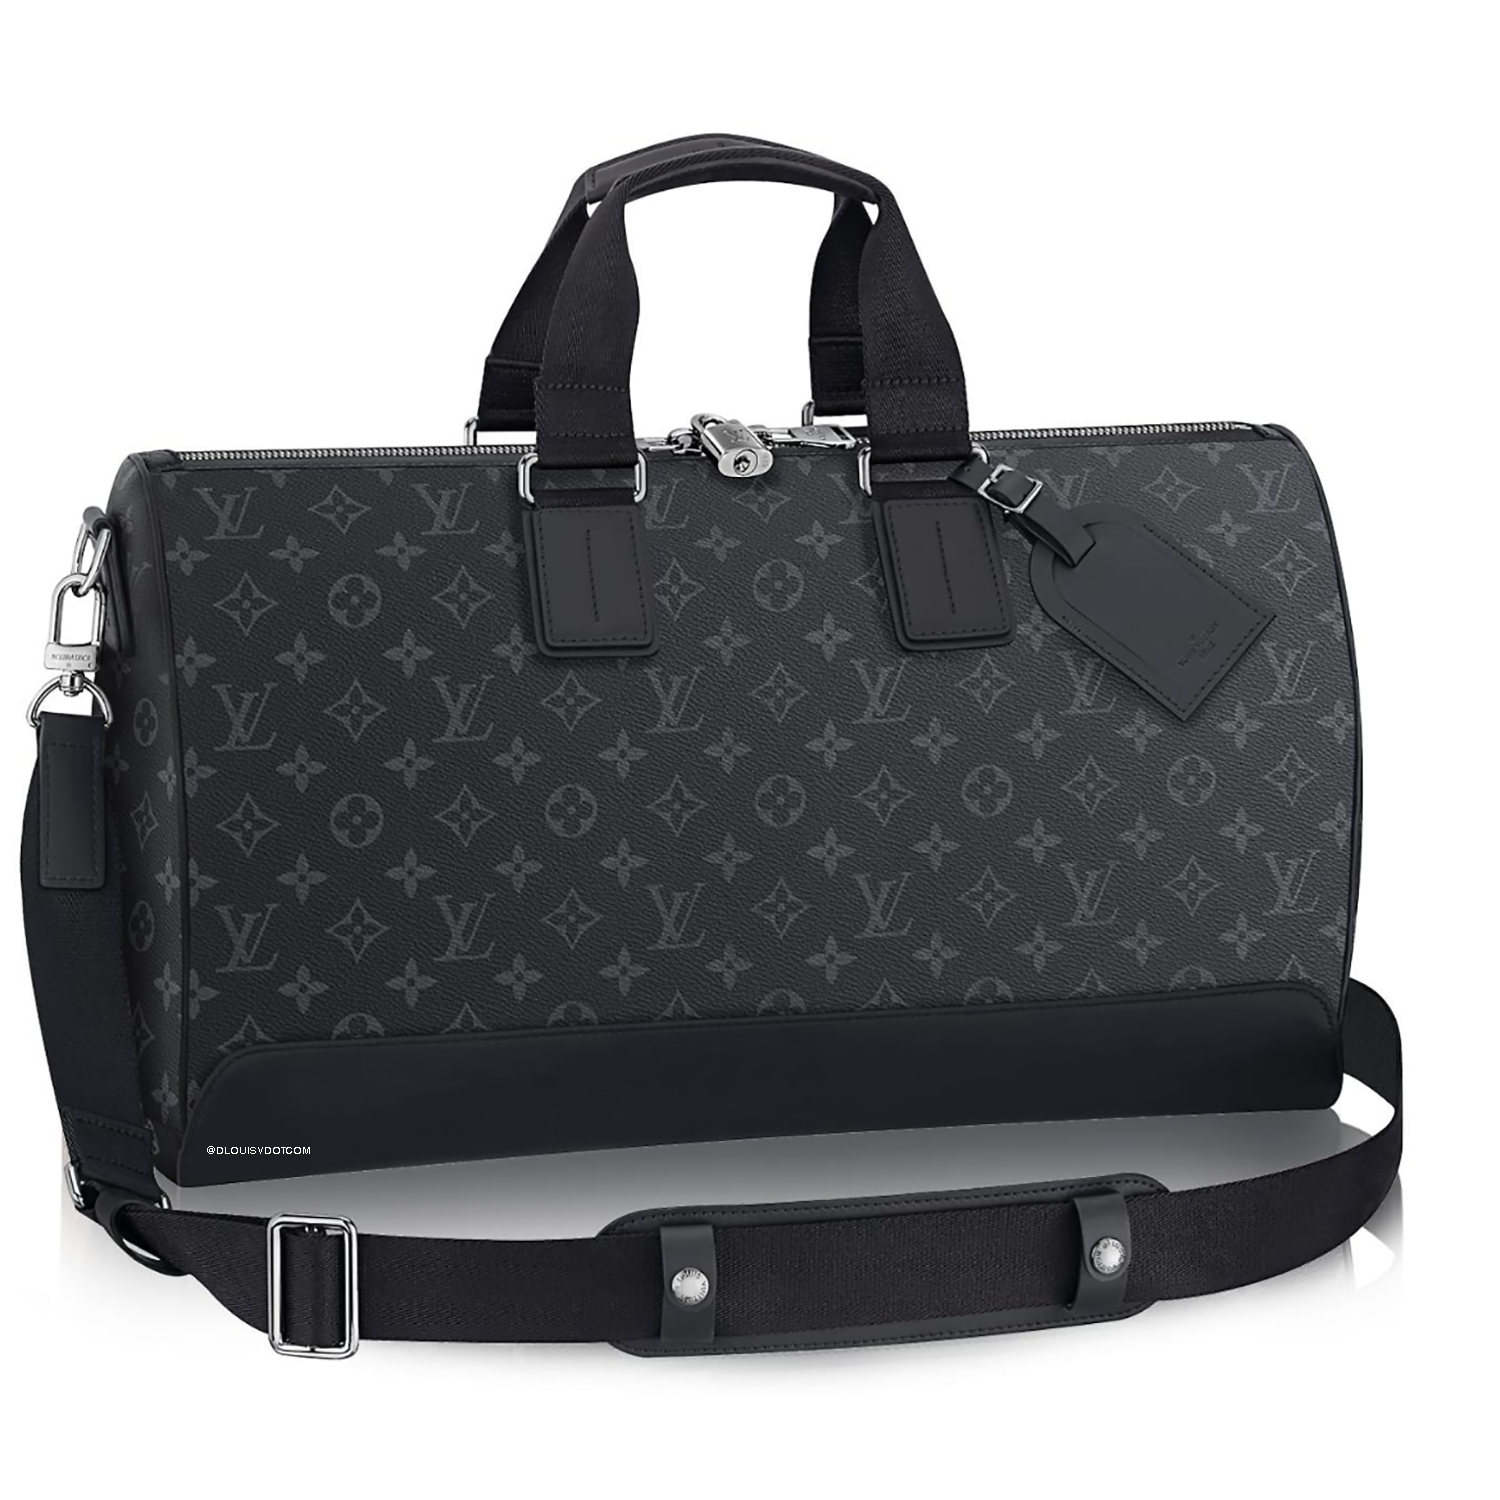 KEEPALL VOYAGER - €2170 $M43038MONOGRAM ECLIPSE